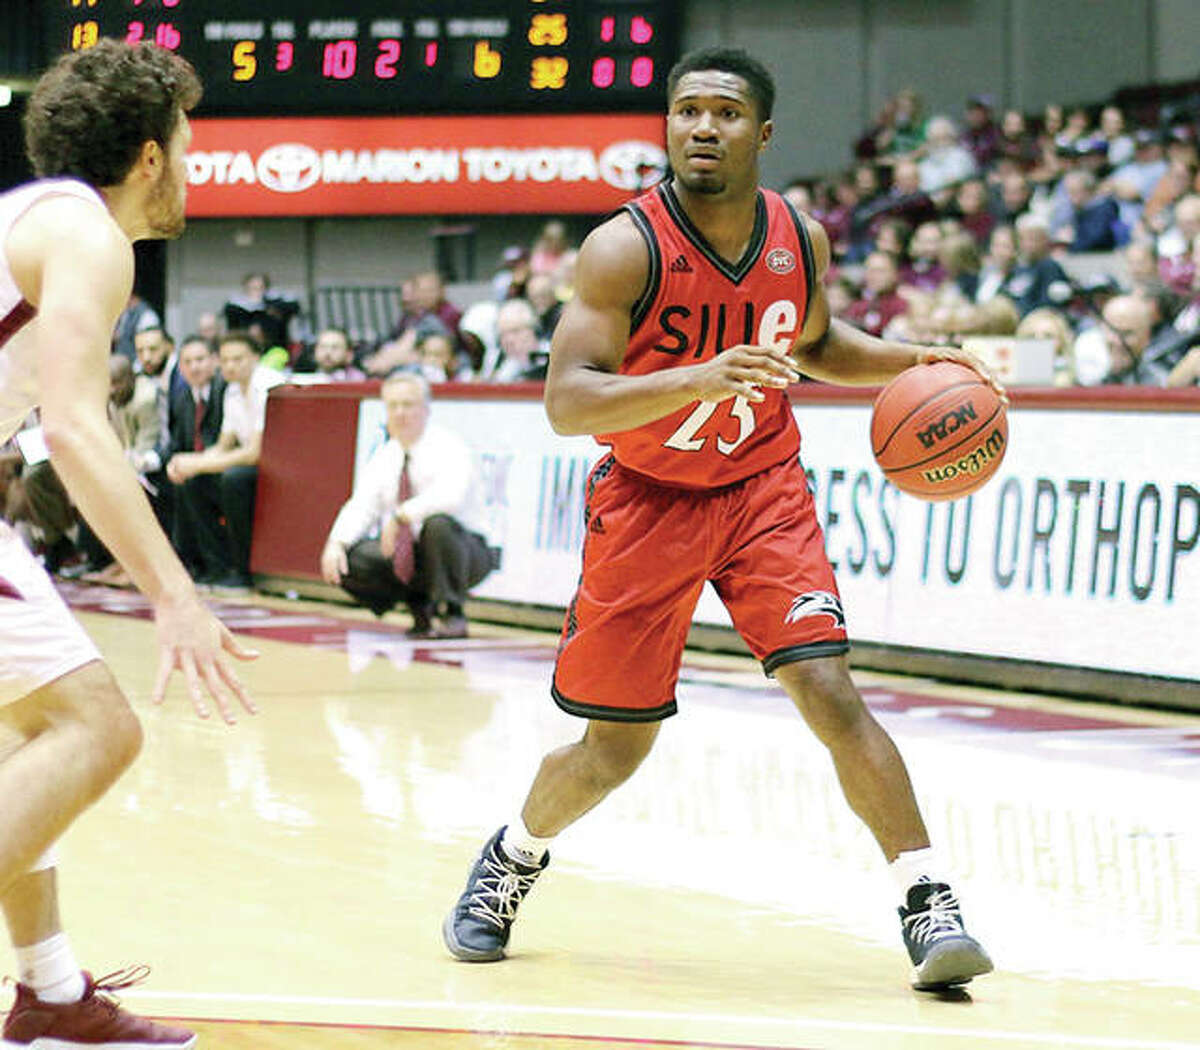 SIUE's Jalen Henry (12) scored 16 points to lead the Cougars in their last game, an 86-71 defeat Sunday at Fort Wayne. SIUE will look to end a four-game skid Wednesday night at IUPUI. He is shown in action last week in action at SIU Carbondale.